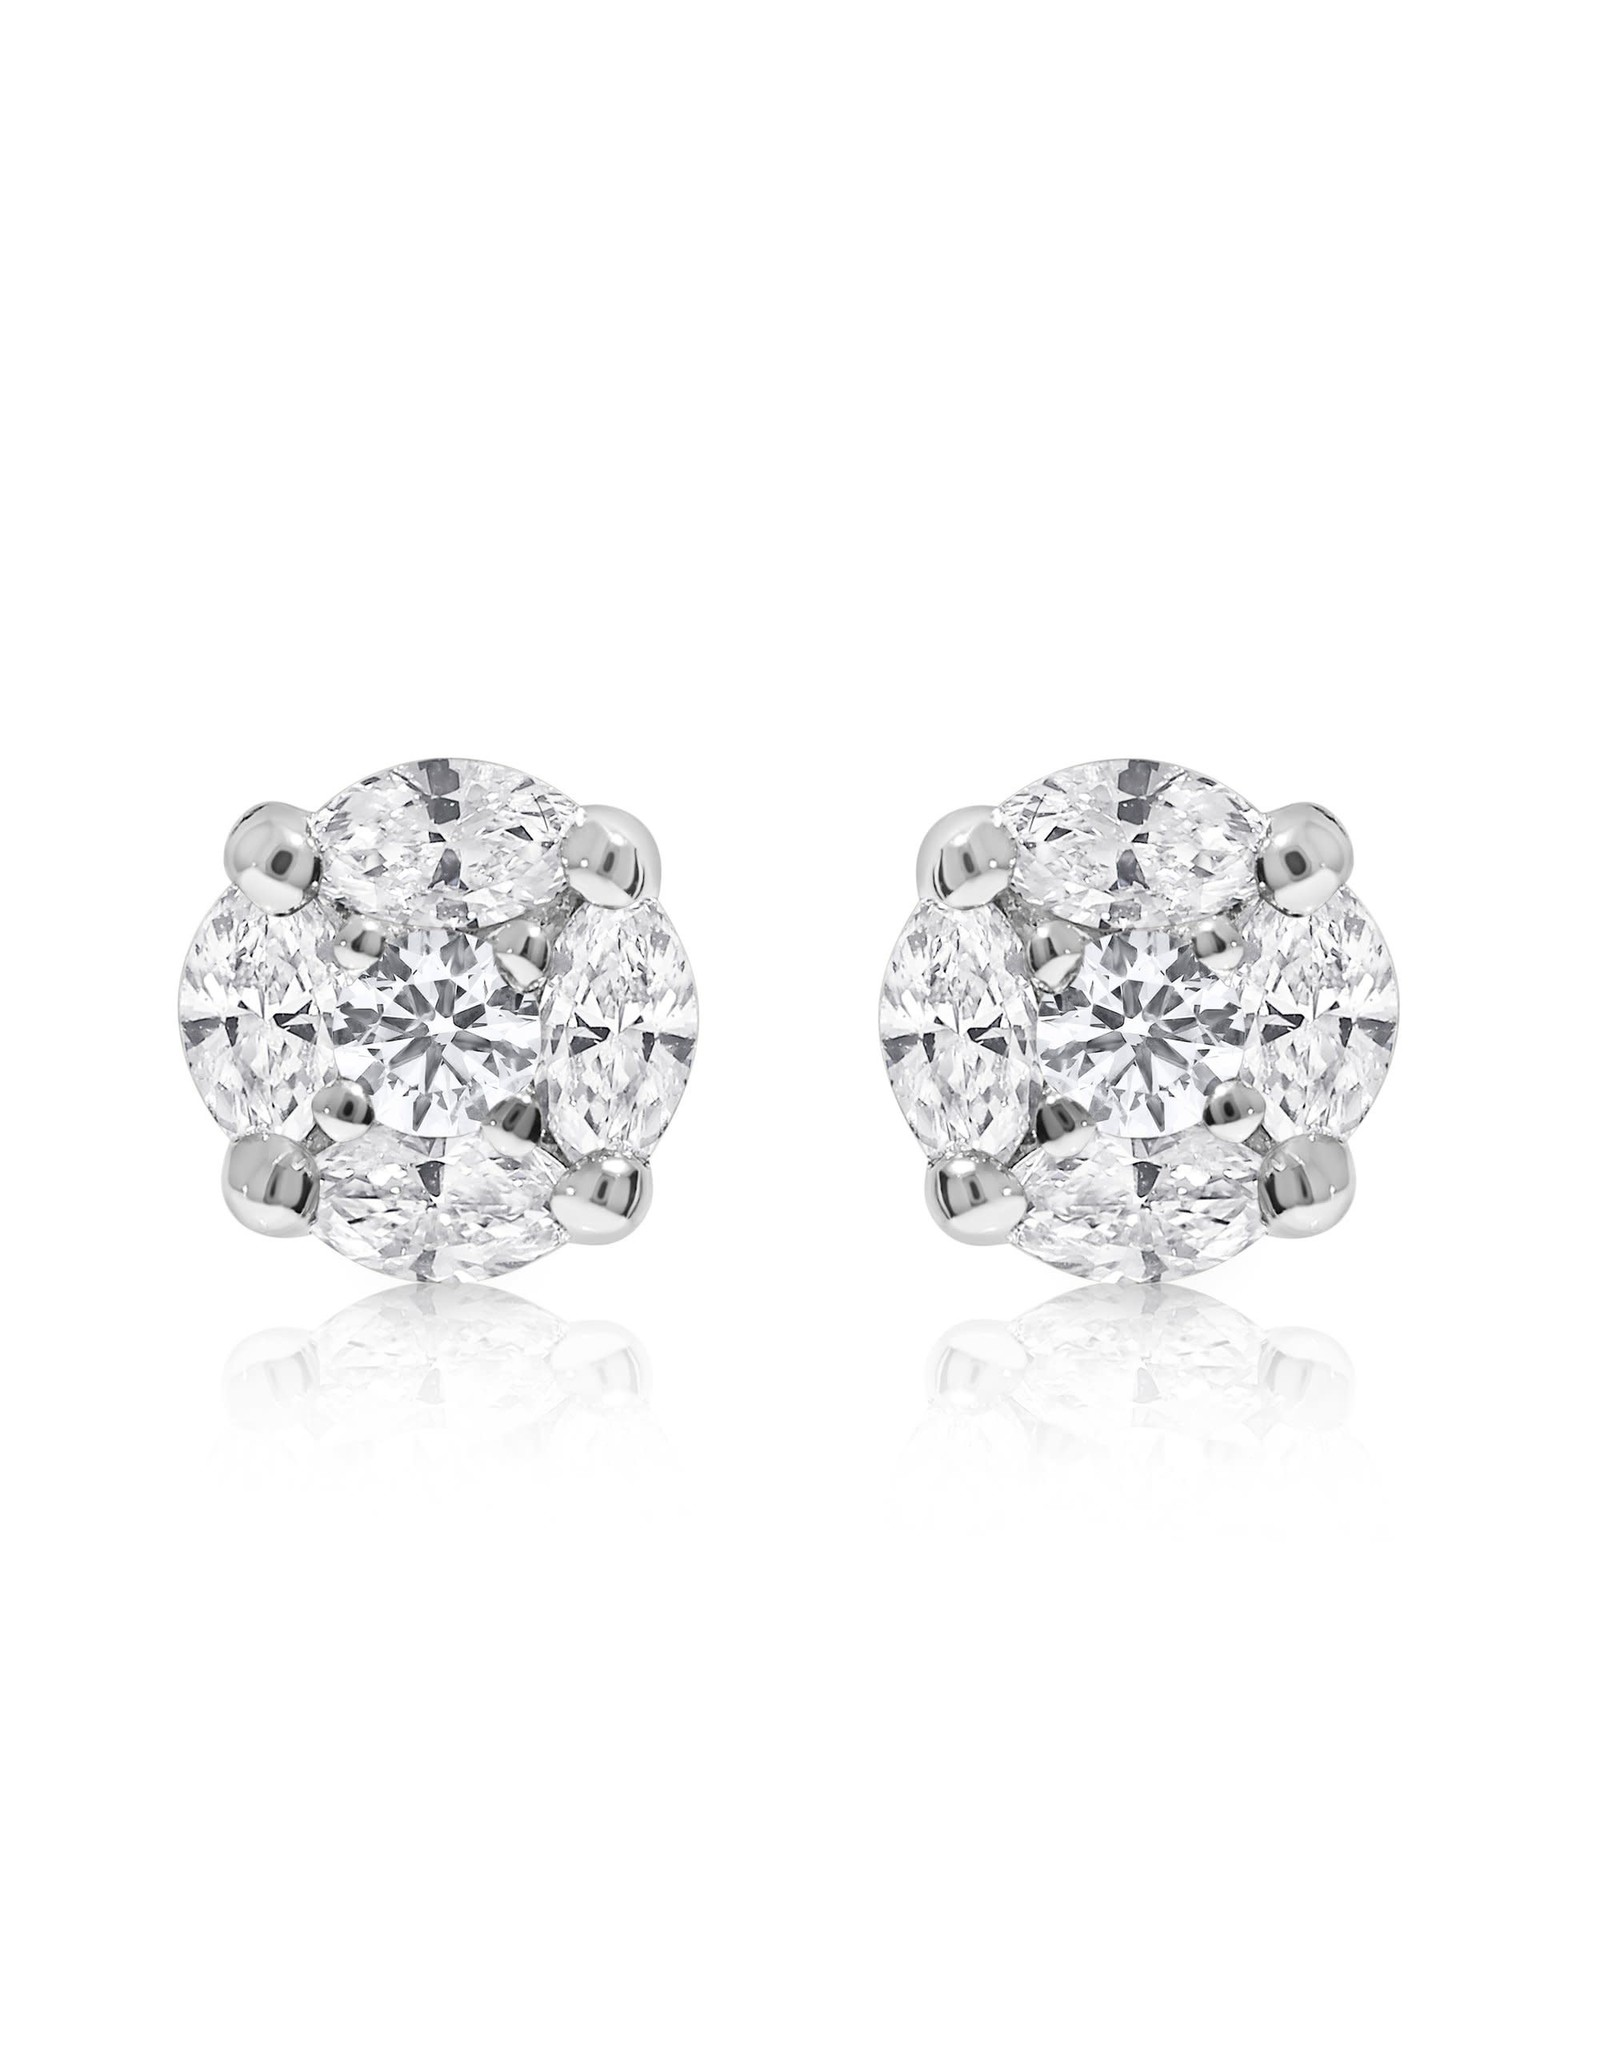 14K White Gold Marquise Diamond Cluster Stud Earrings, D: 1.80ct